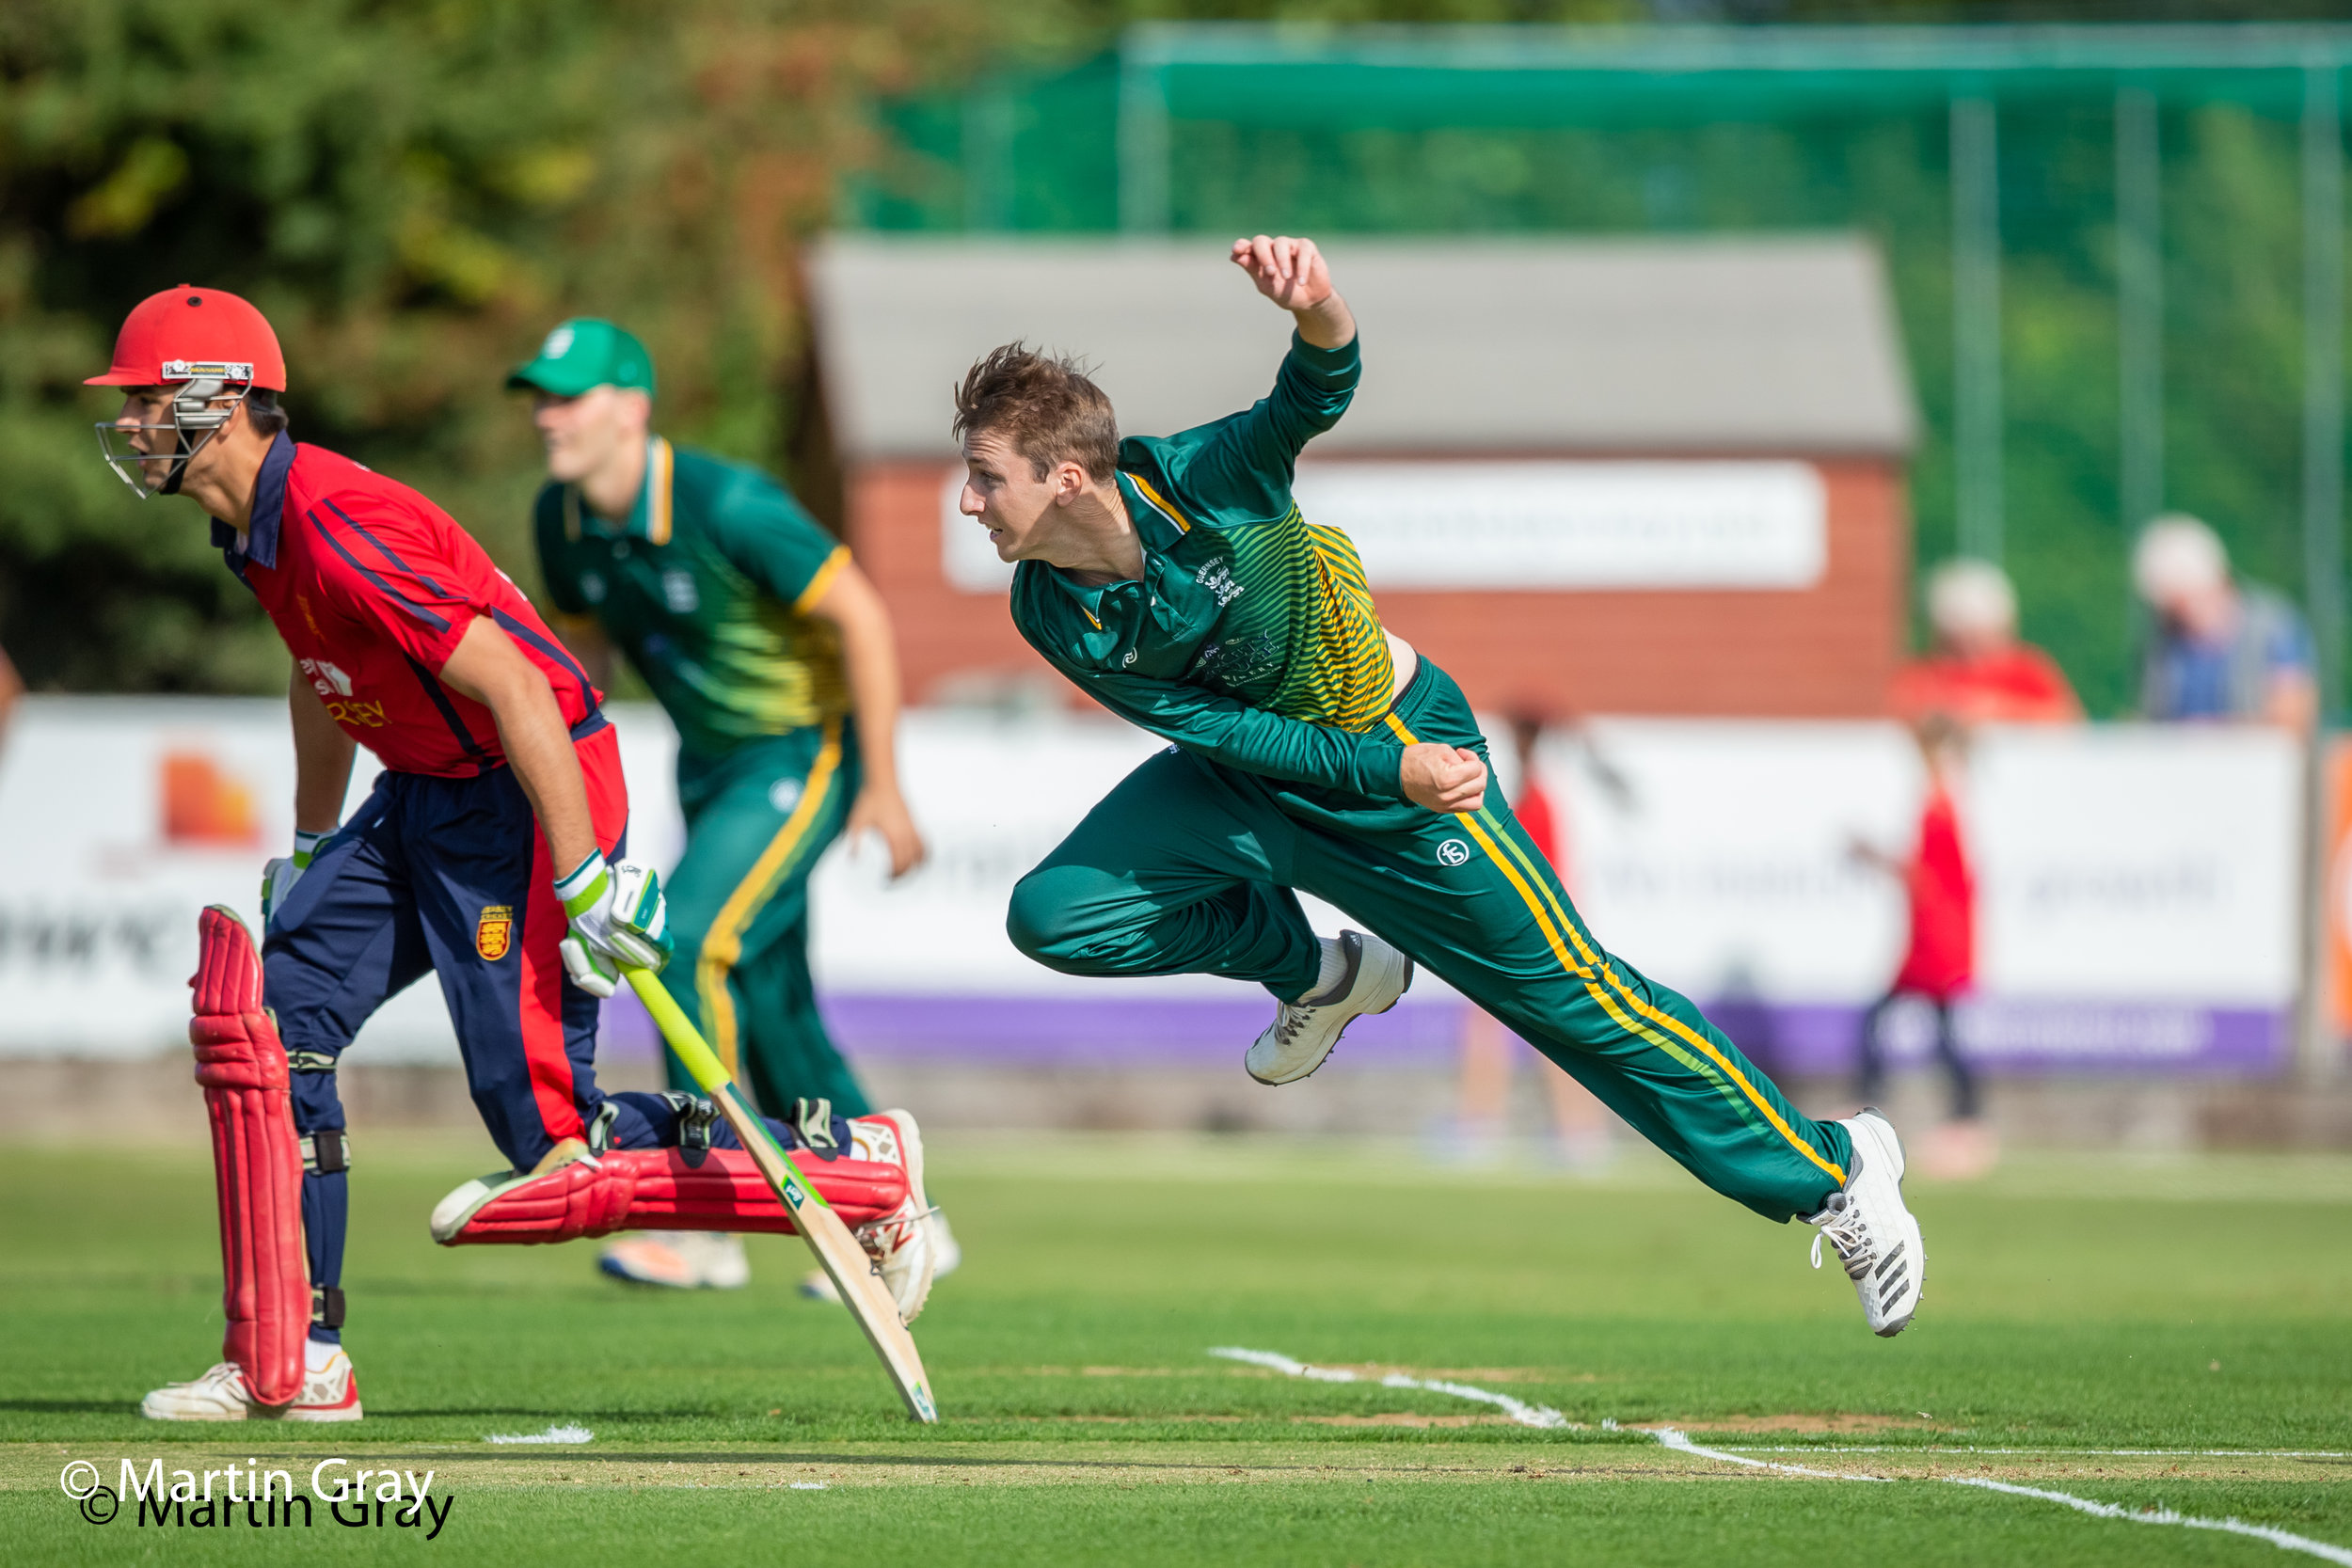 Guernsey's Matt Stokes in his follow through during the 2018 T20 Inter-Insulars at Farmers Field in Jersey....